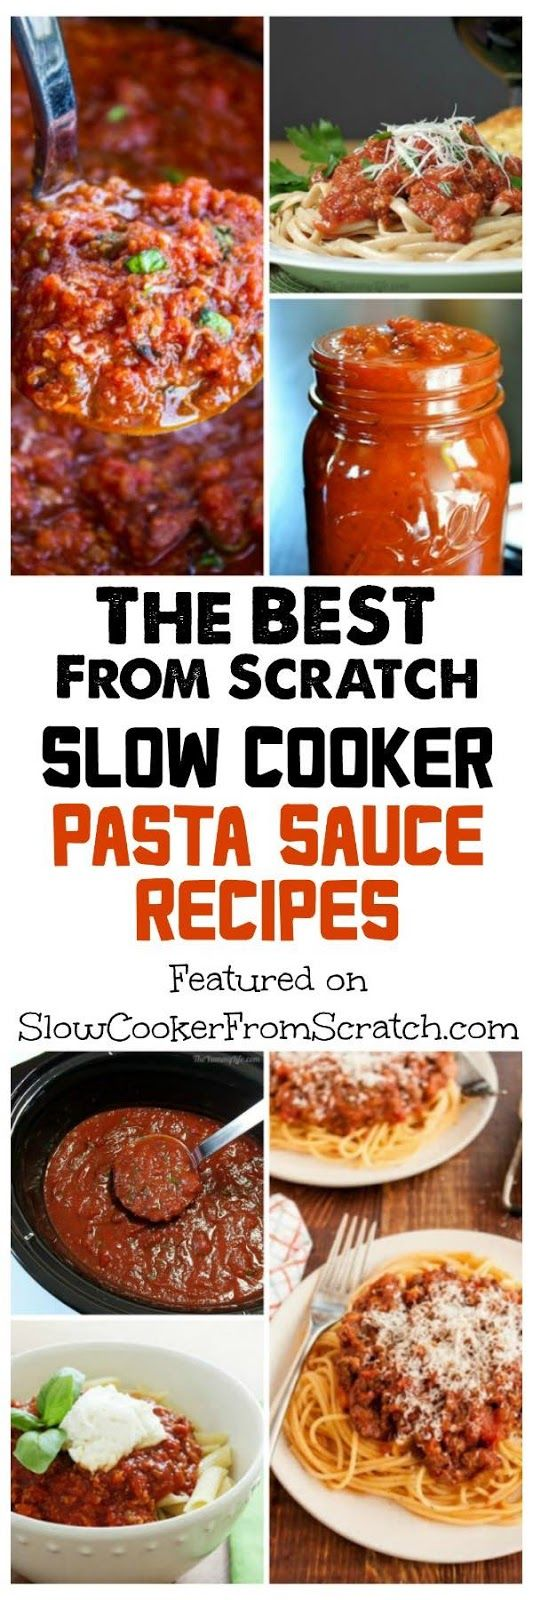 Slow cooker pasta, Pasta sauces and Pasta sauce recipes on Pinterest